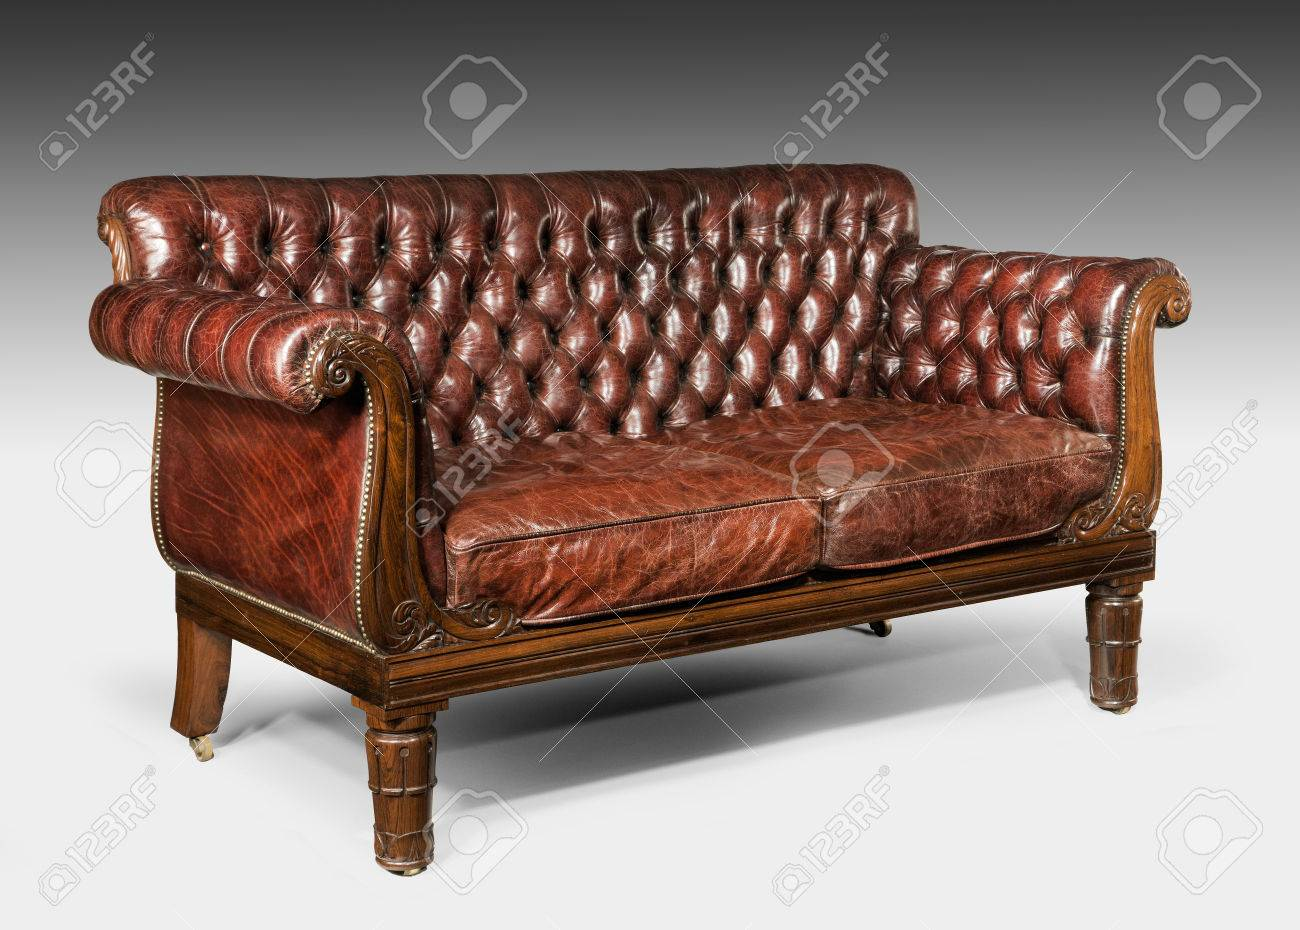 Vintage Couch Antique Old Vintage Couch Sofa